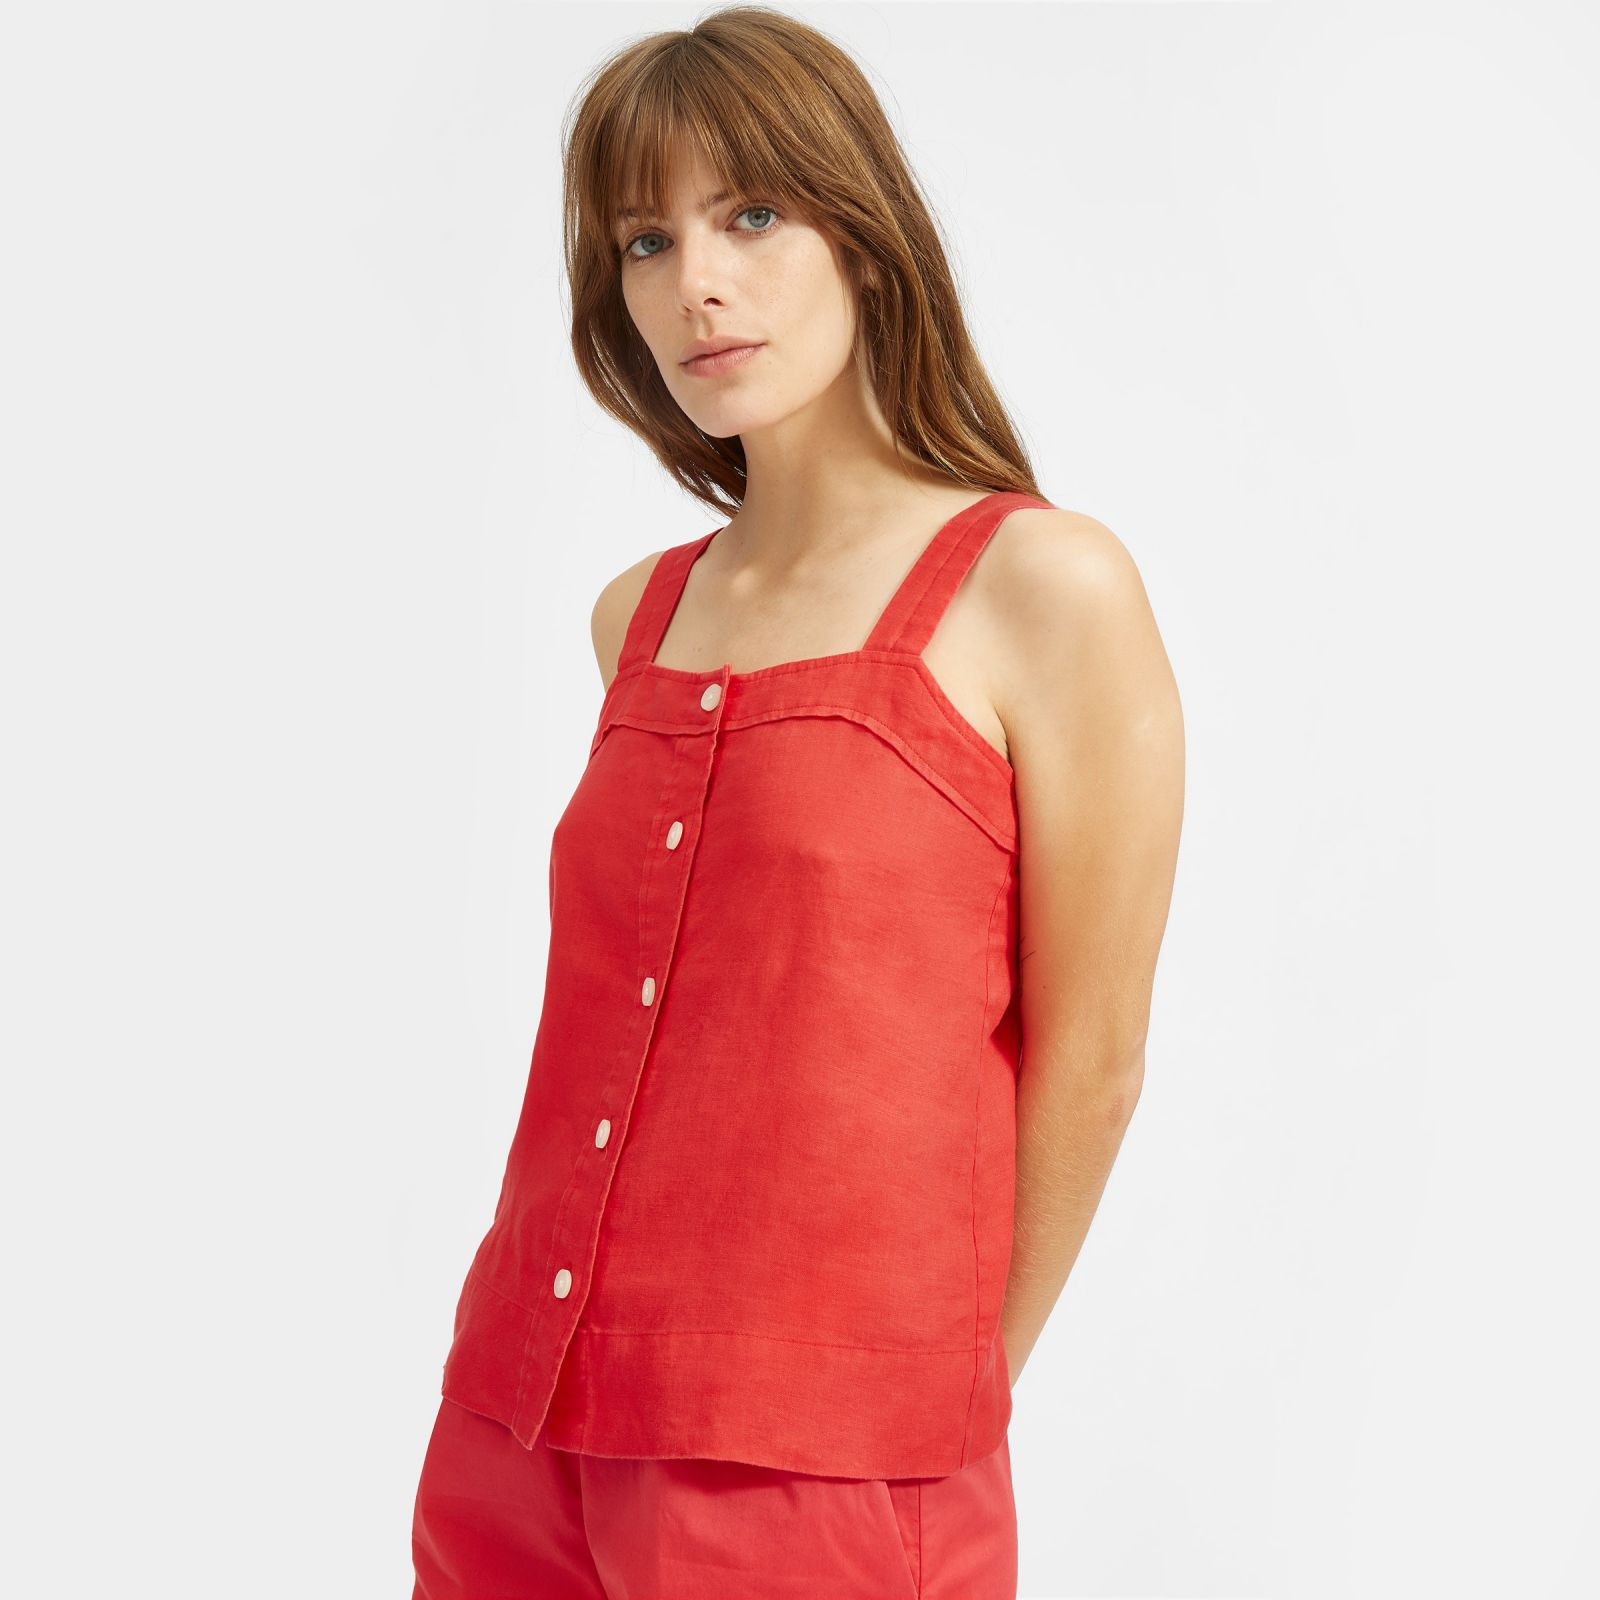 women's linen picnic top shirt by everlane in tomato, size 16